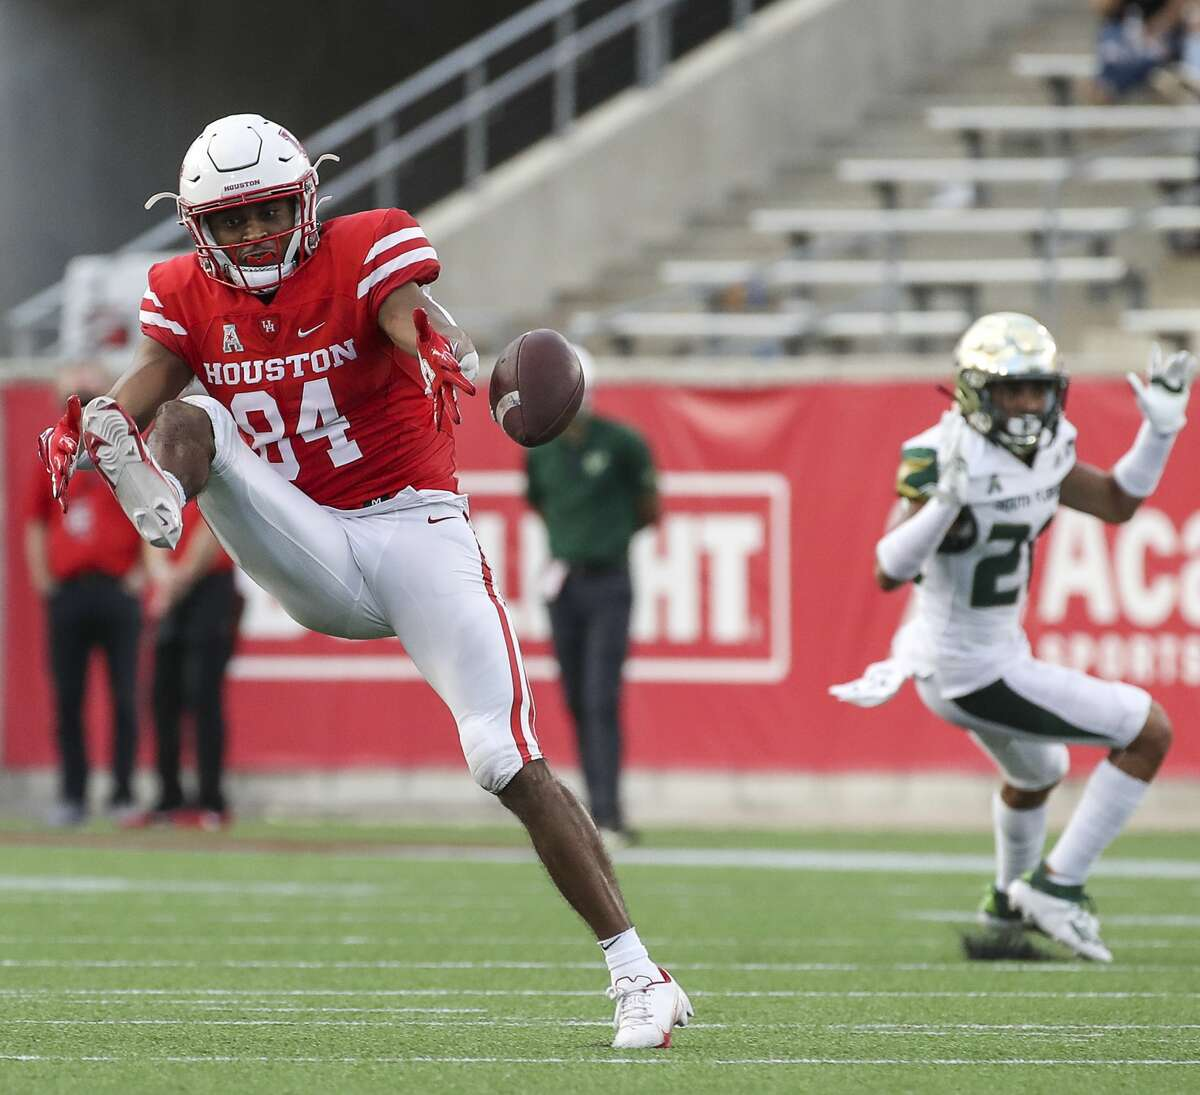 Cole McGowan's playing days at UH are over after a knee injury suffered this summer, making the Cougars' receiver depth a concern.